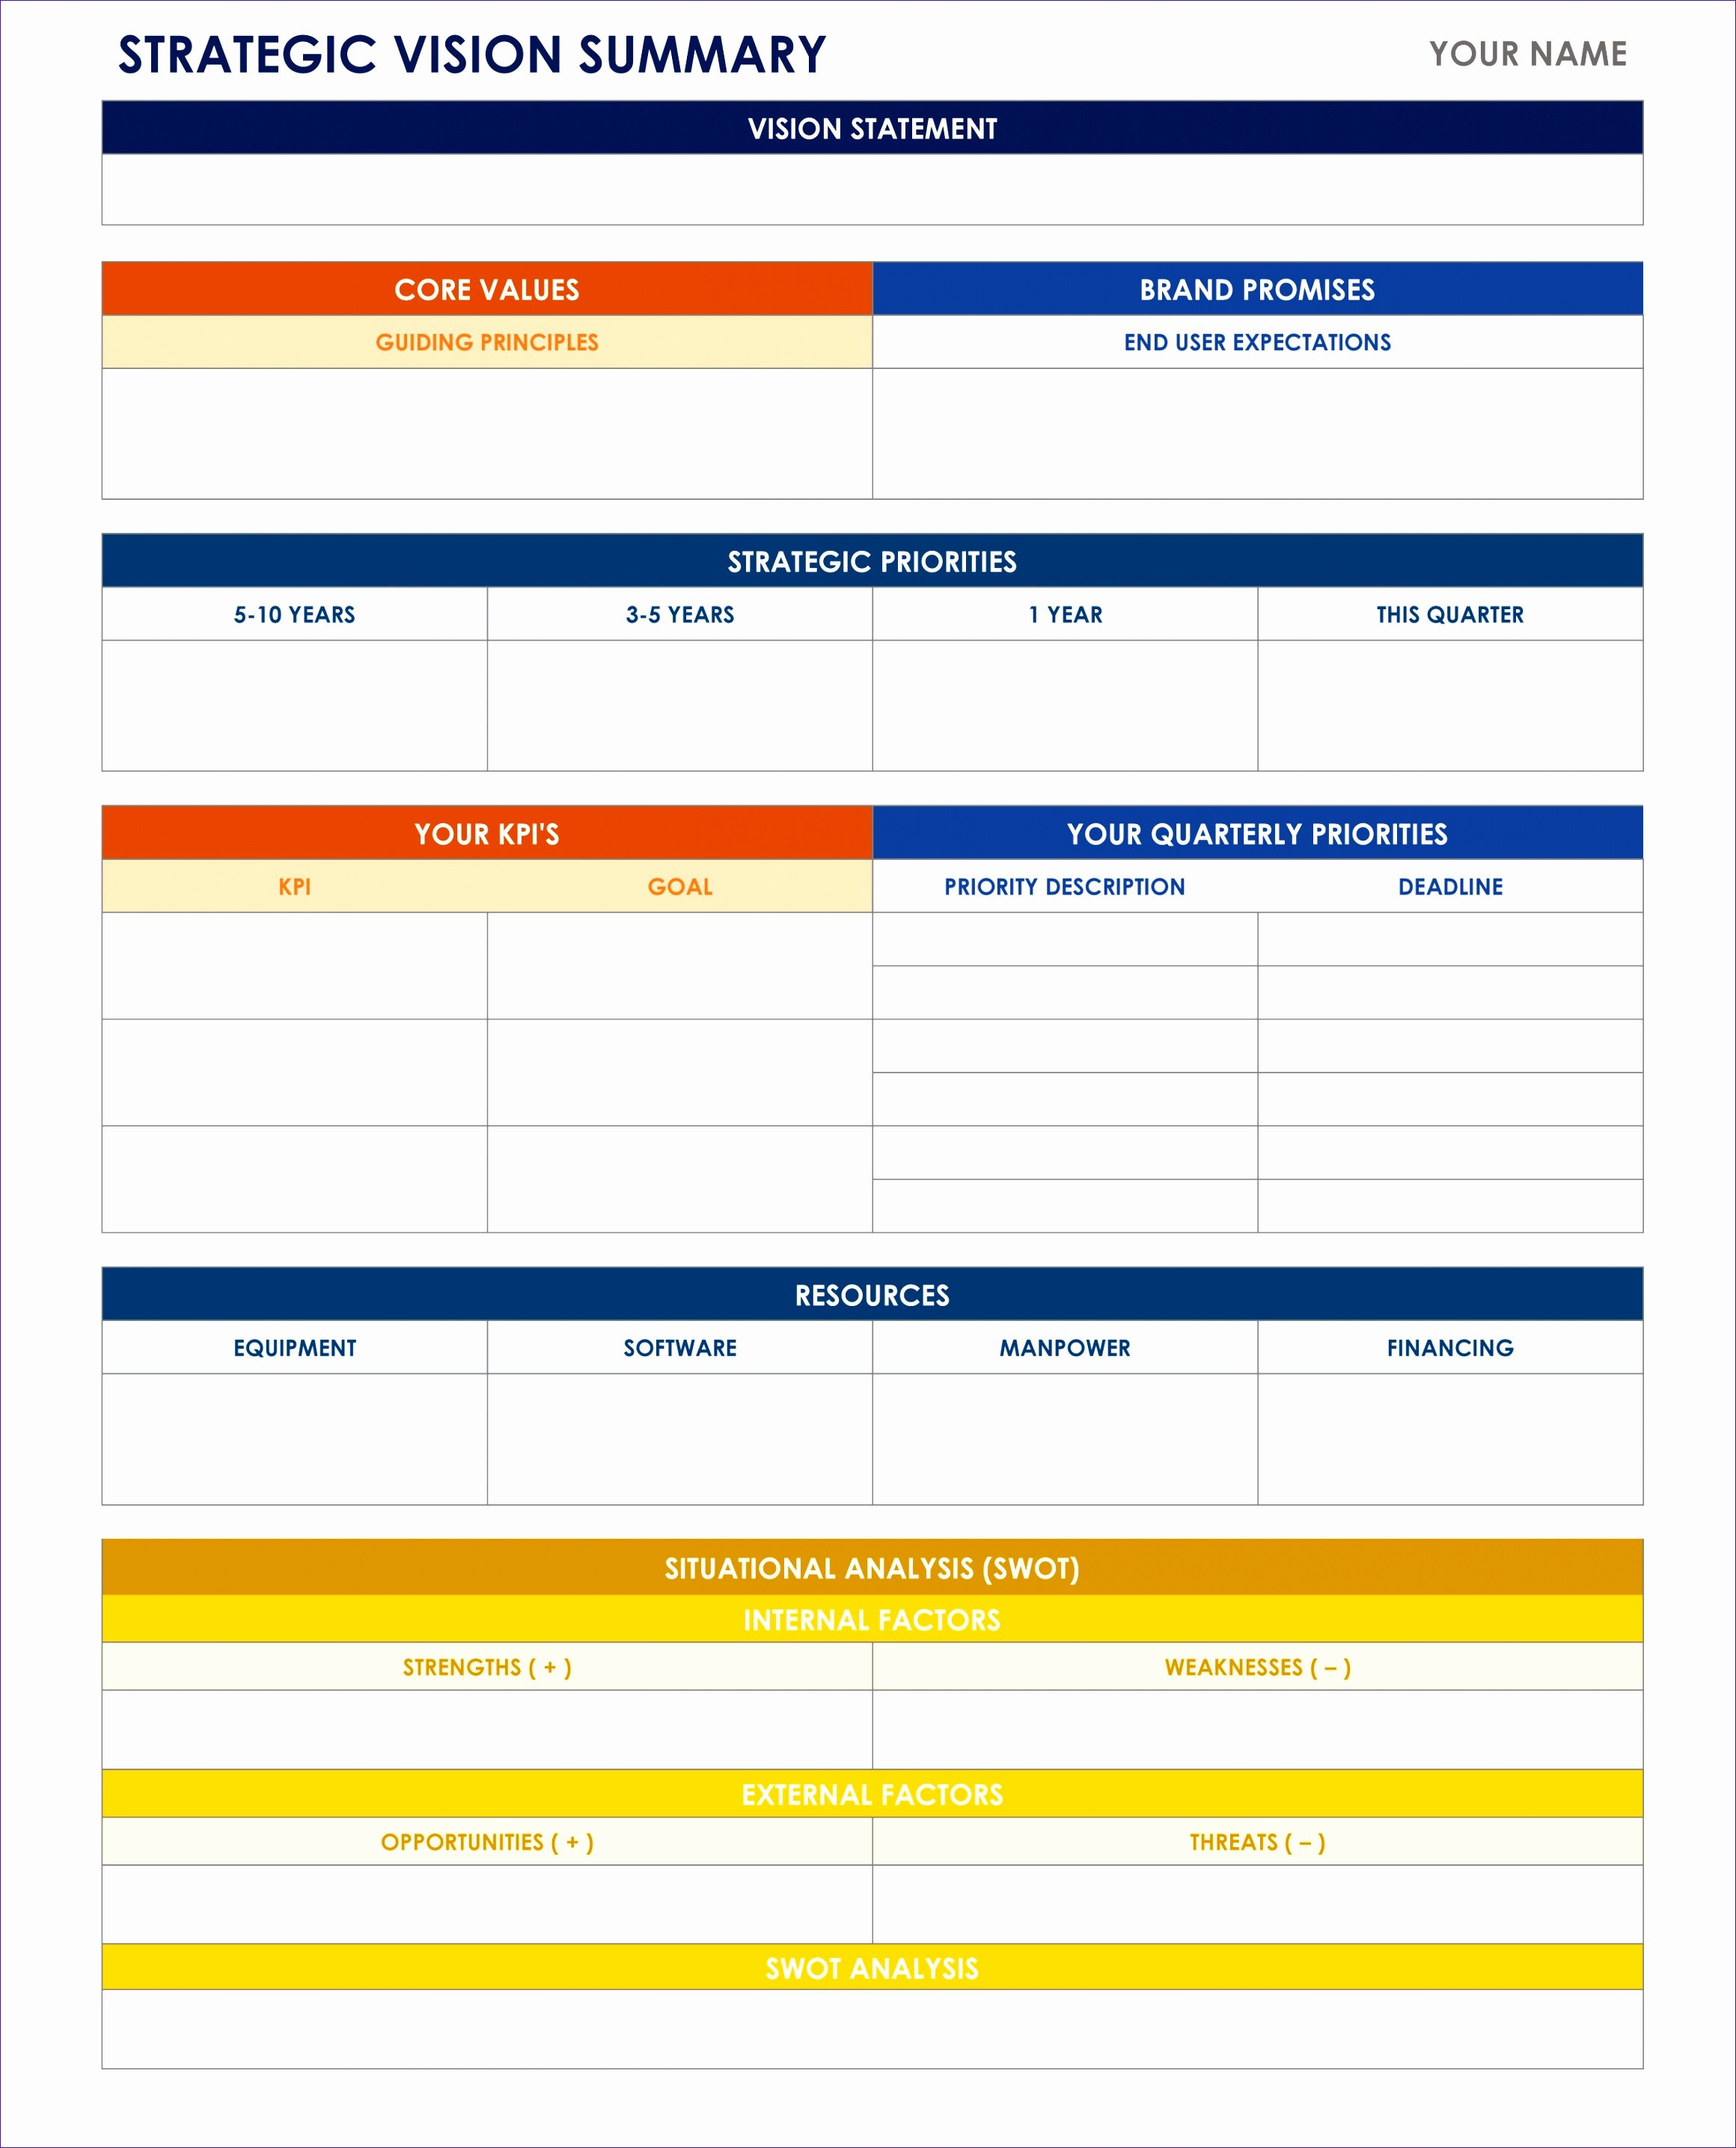 Training Matrix Template Free Excel Luxury 9 Free Training Matrix Template Excel Exceltemplates